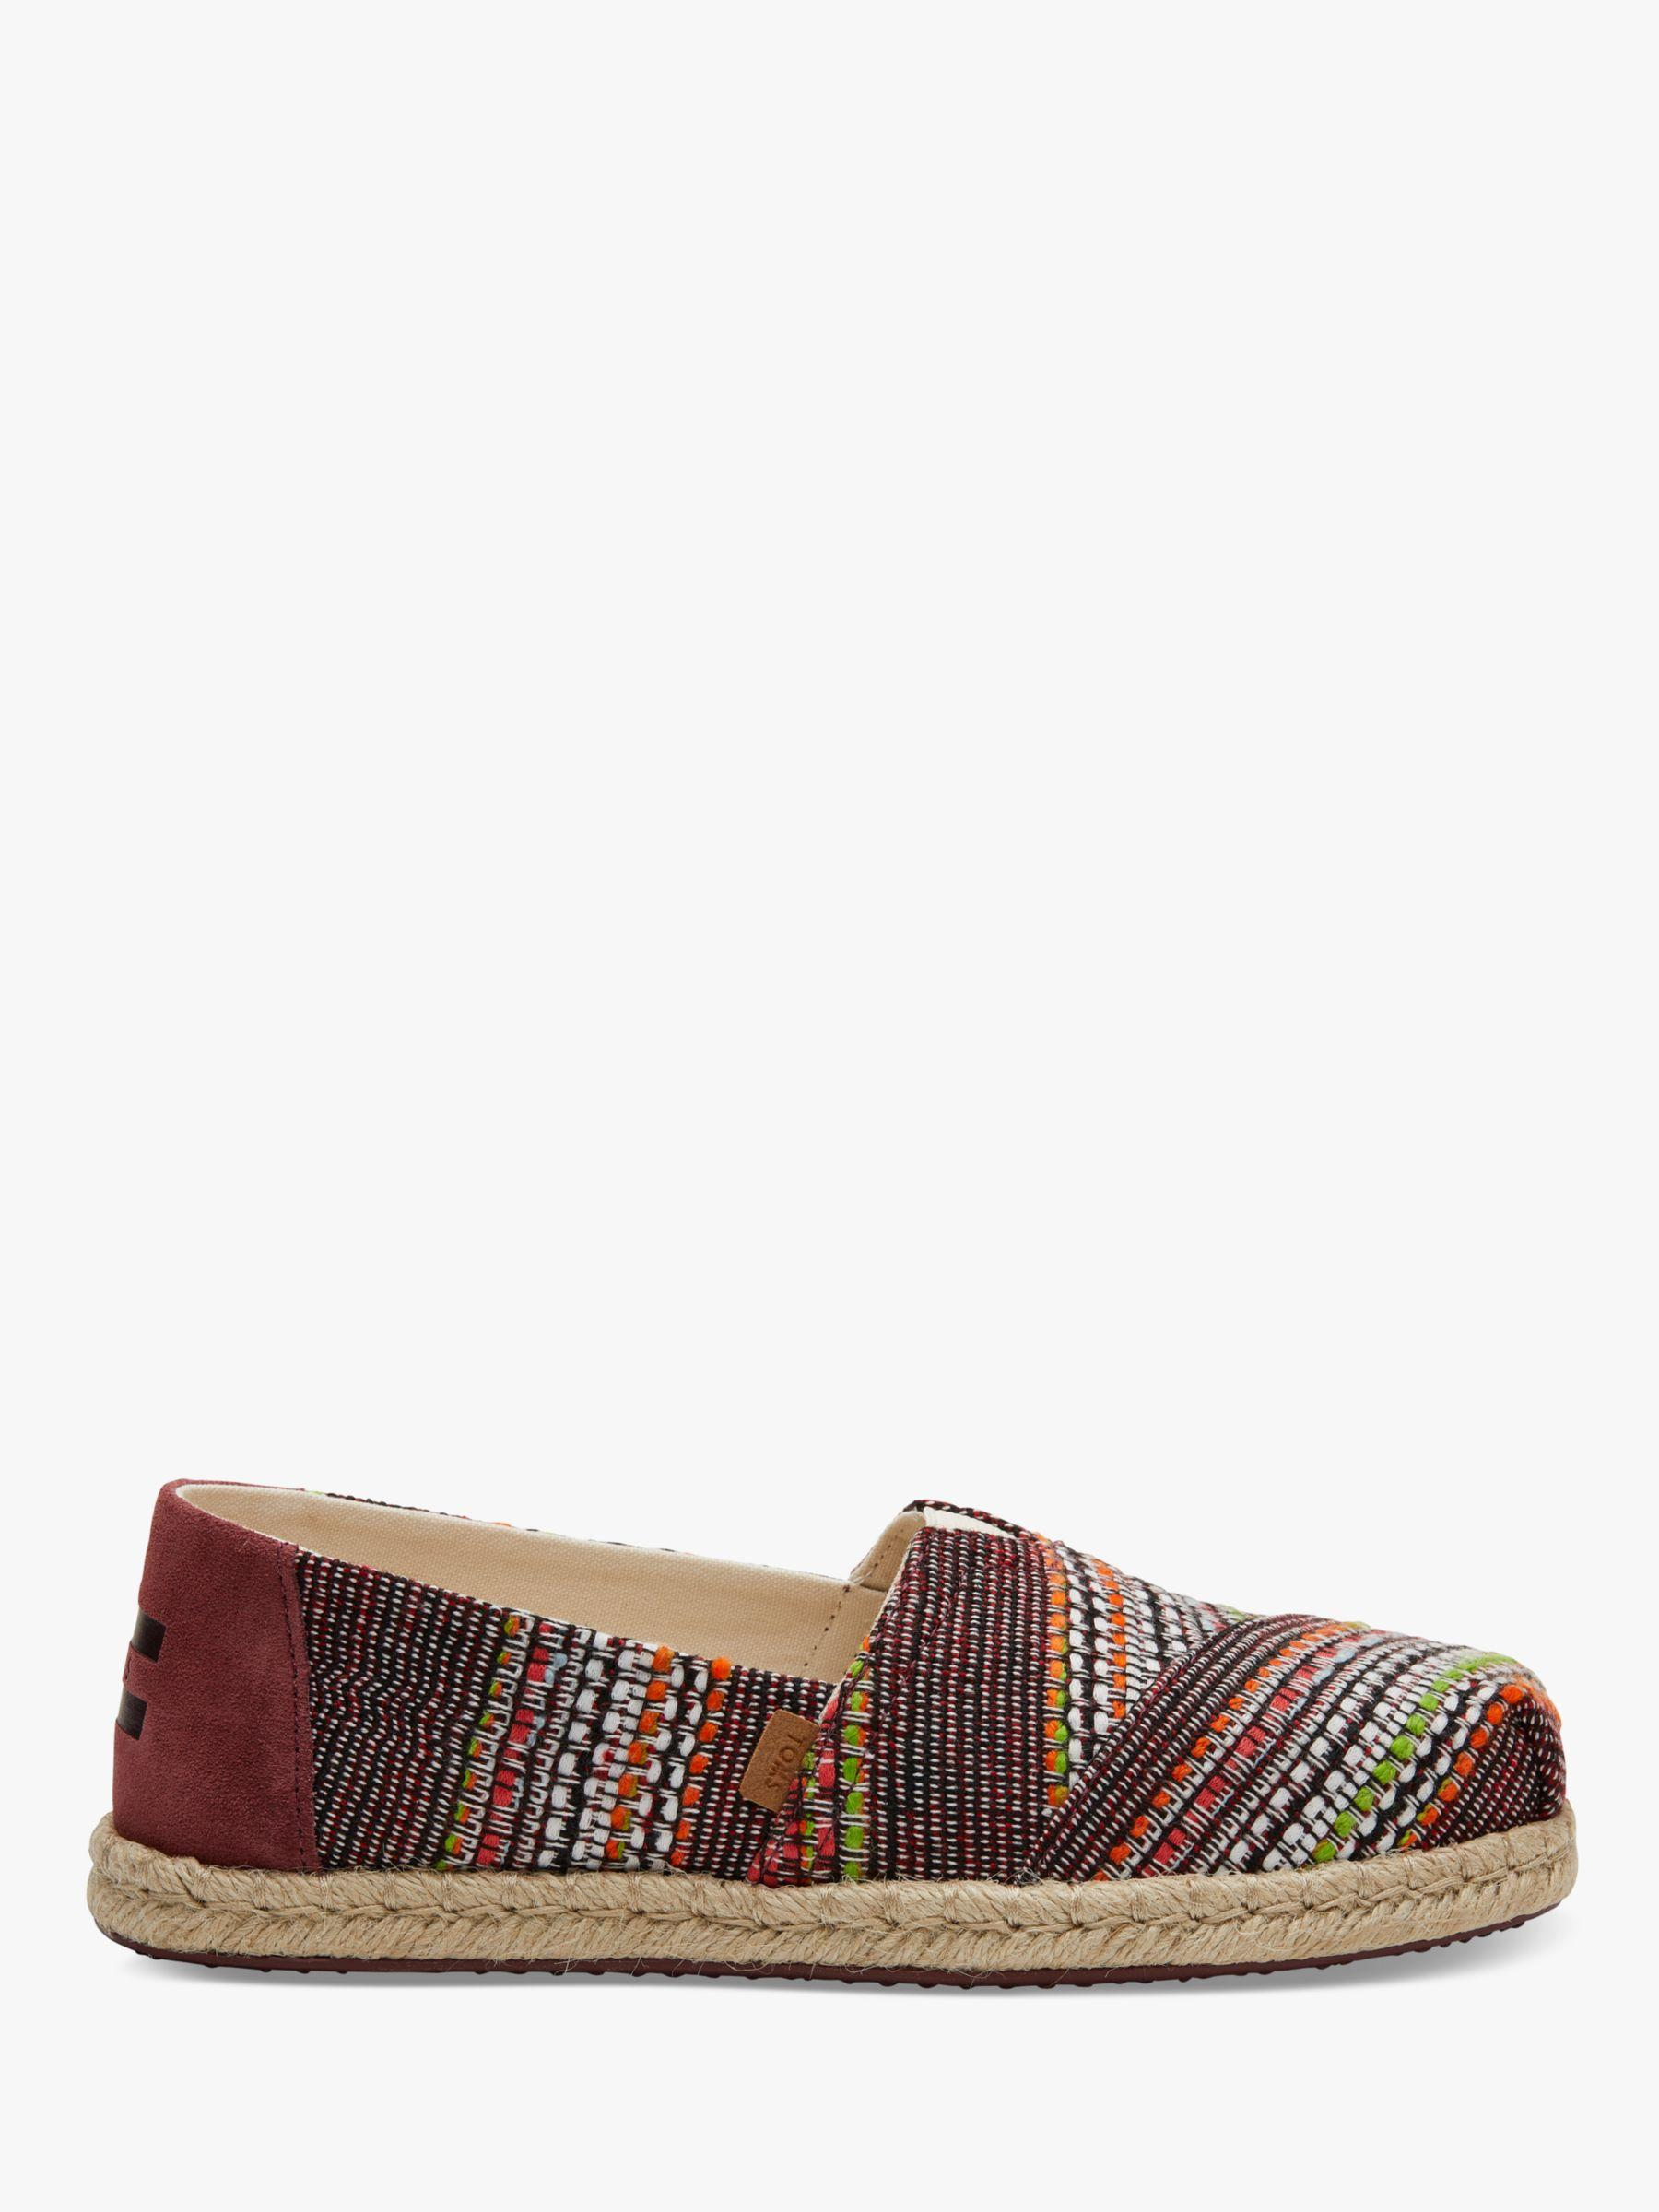 02ed059af34 TOMS. Women s Brown Alpargata Embroidered Espadrilles. £35 From John Lewis  and Partners